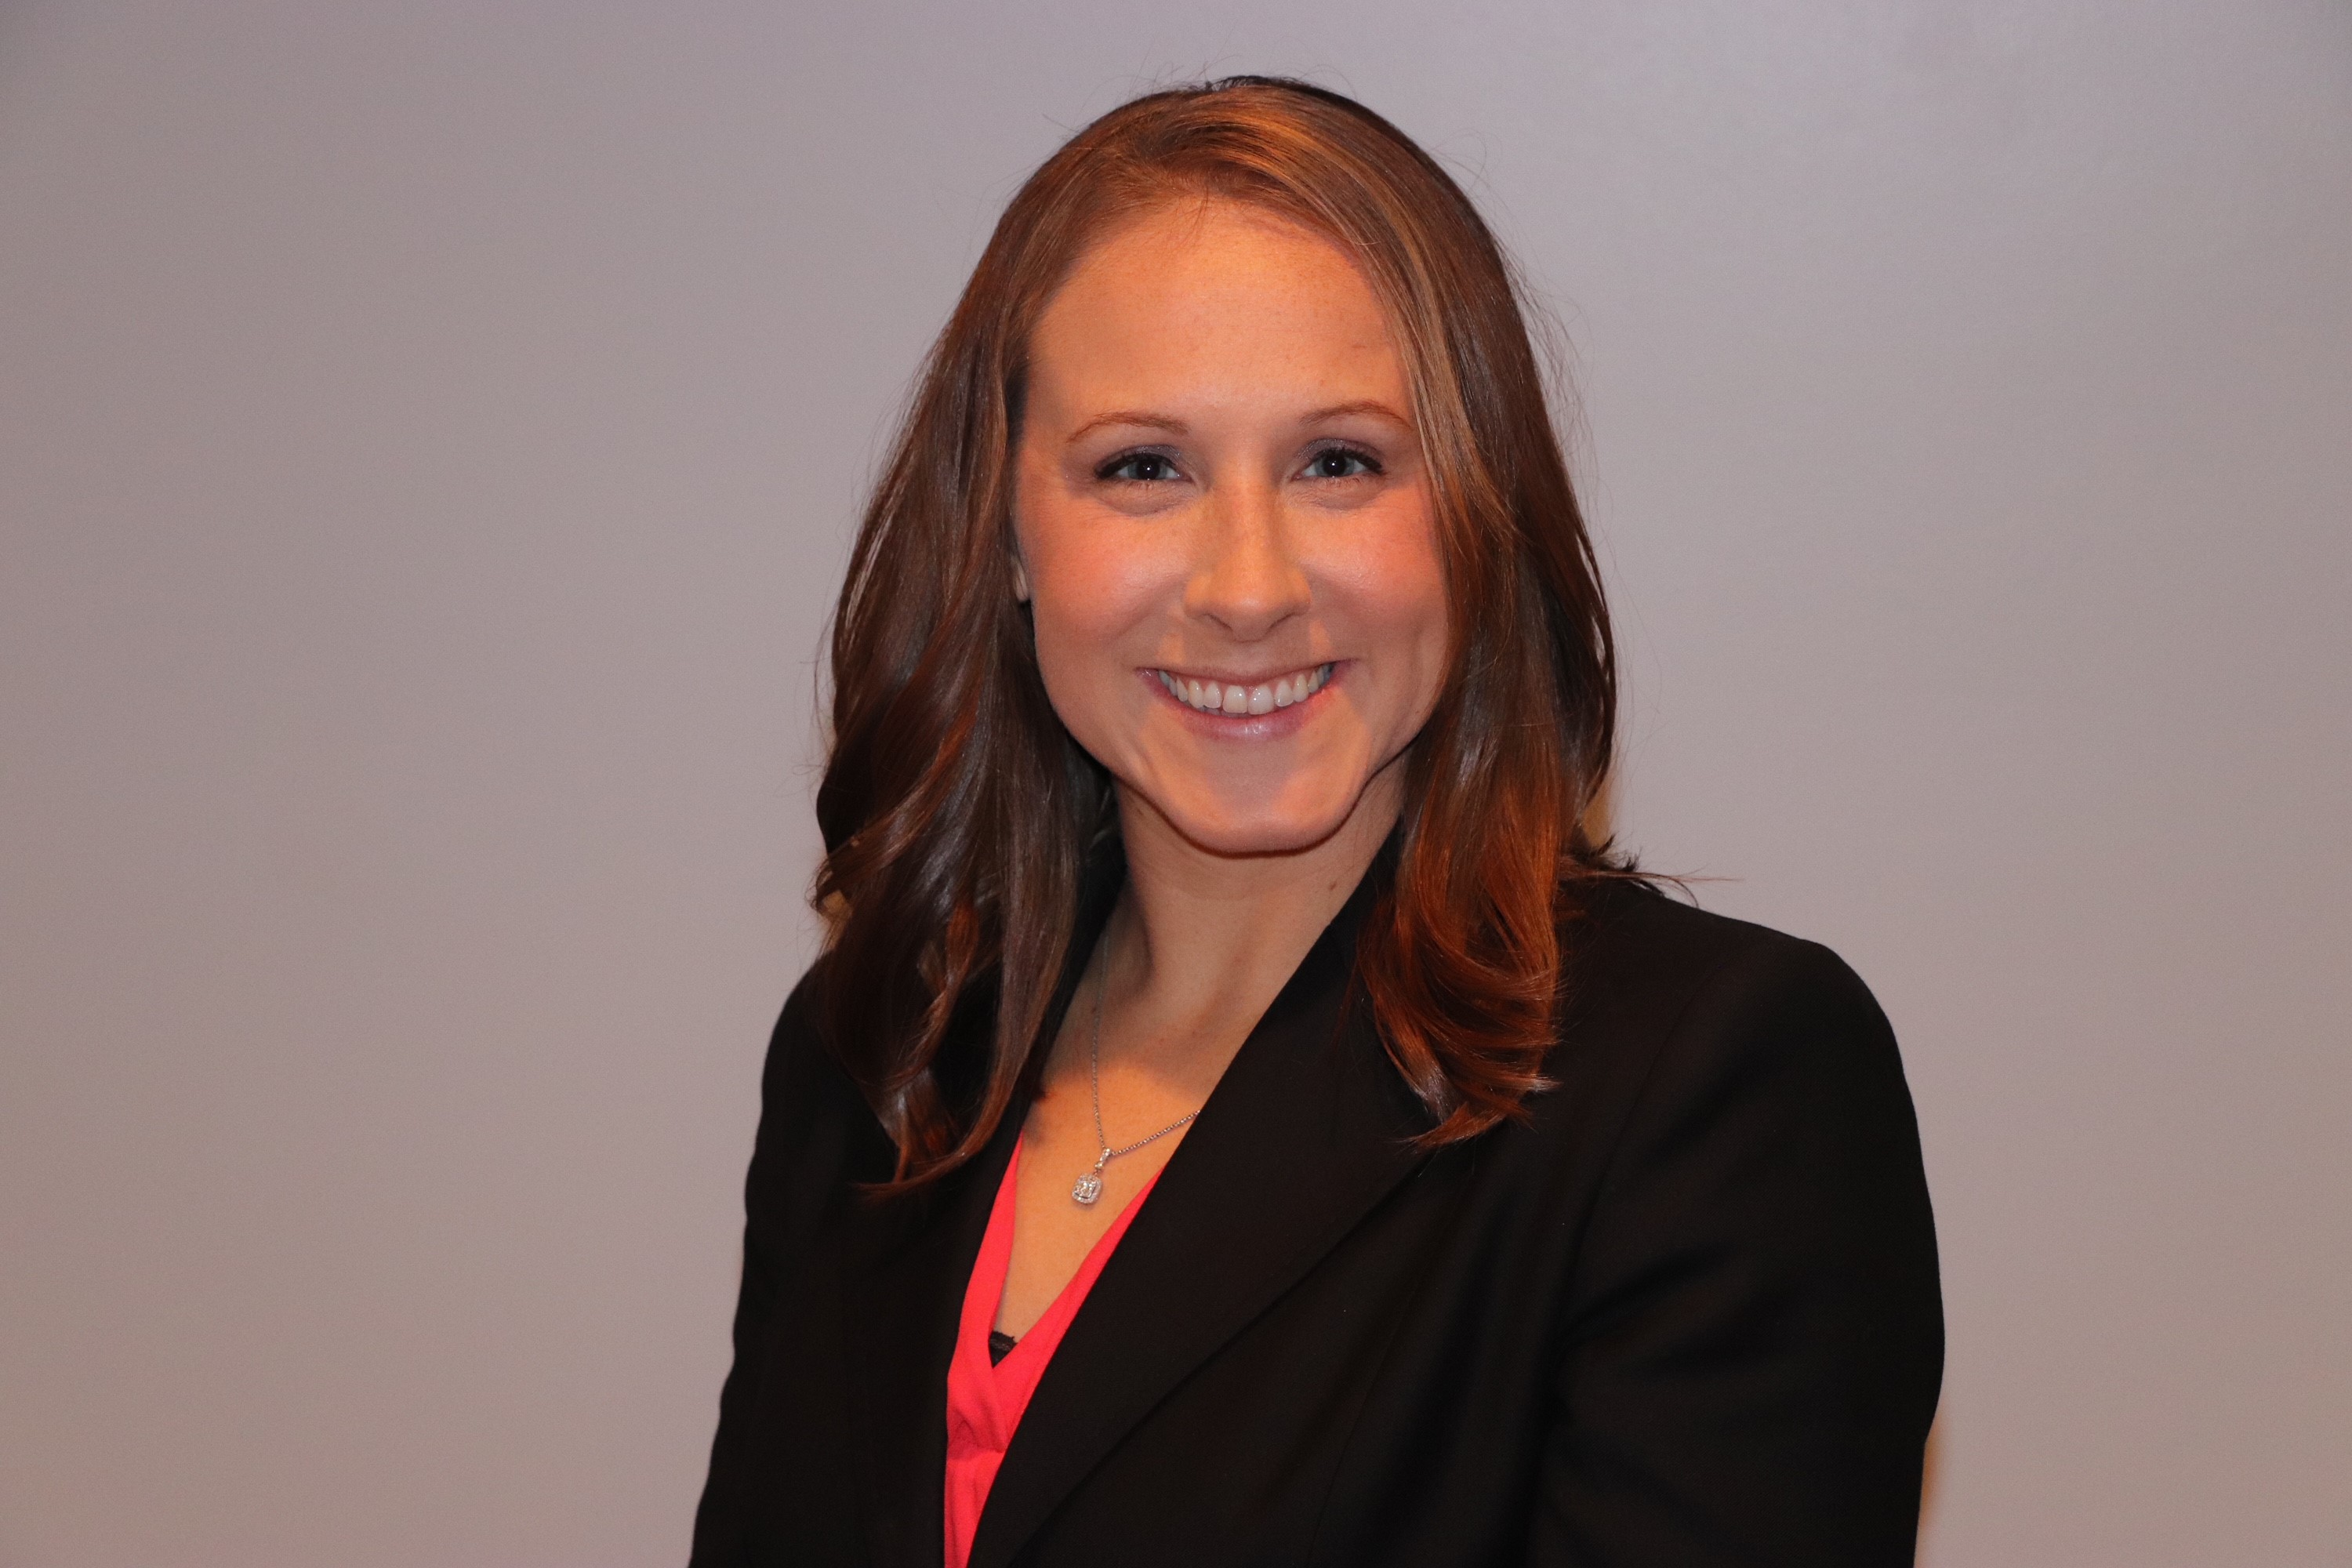 Artesian Valley Health System Welcomes New Provider – Melissa Whitney, PA-C